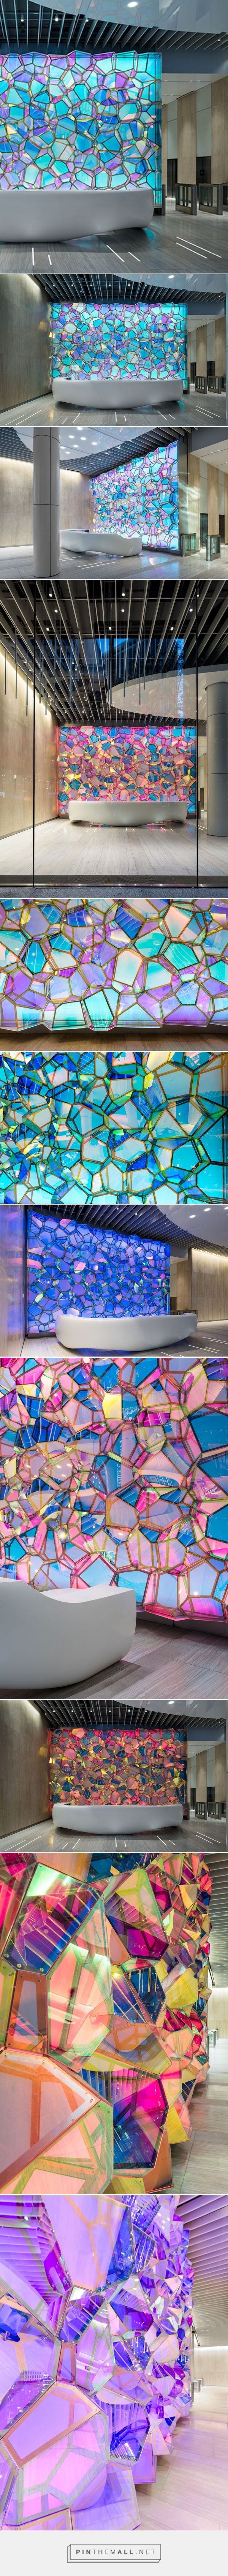 SOFTlab animates one state street lobby with kaleidoscopic wall structure - created via https://pinthemall.net